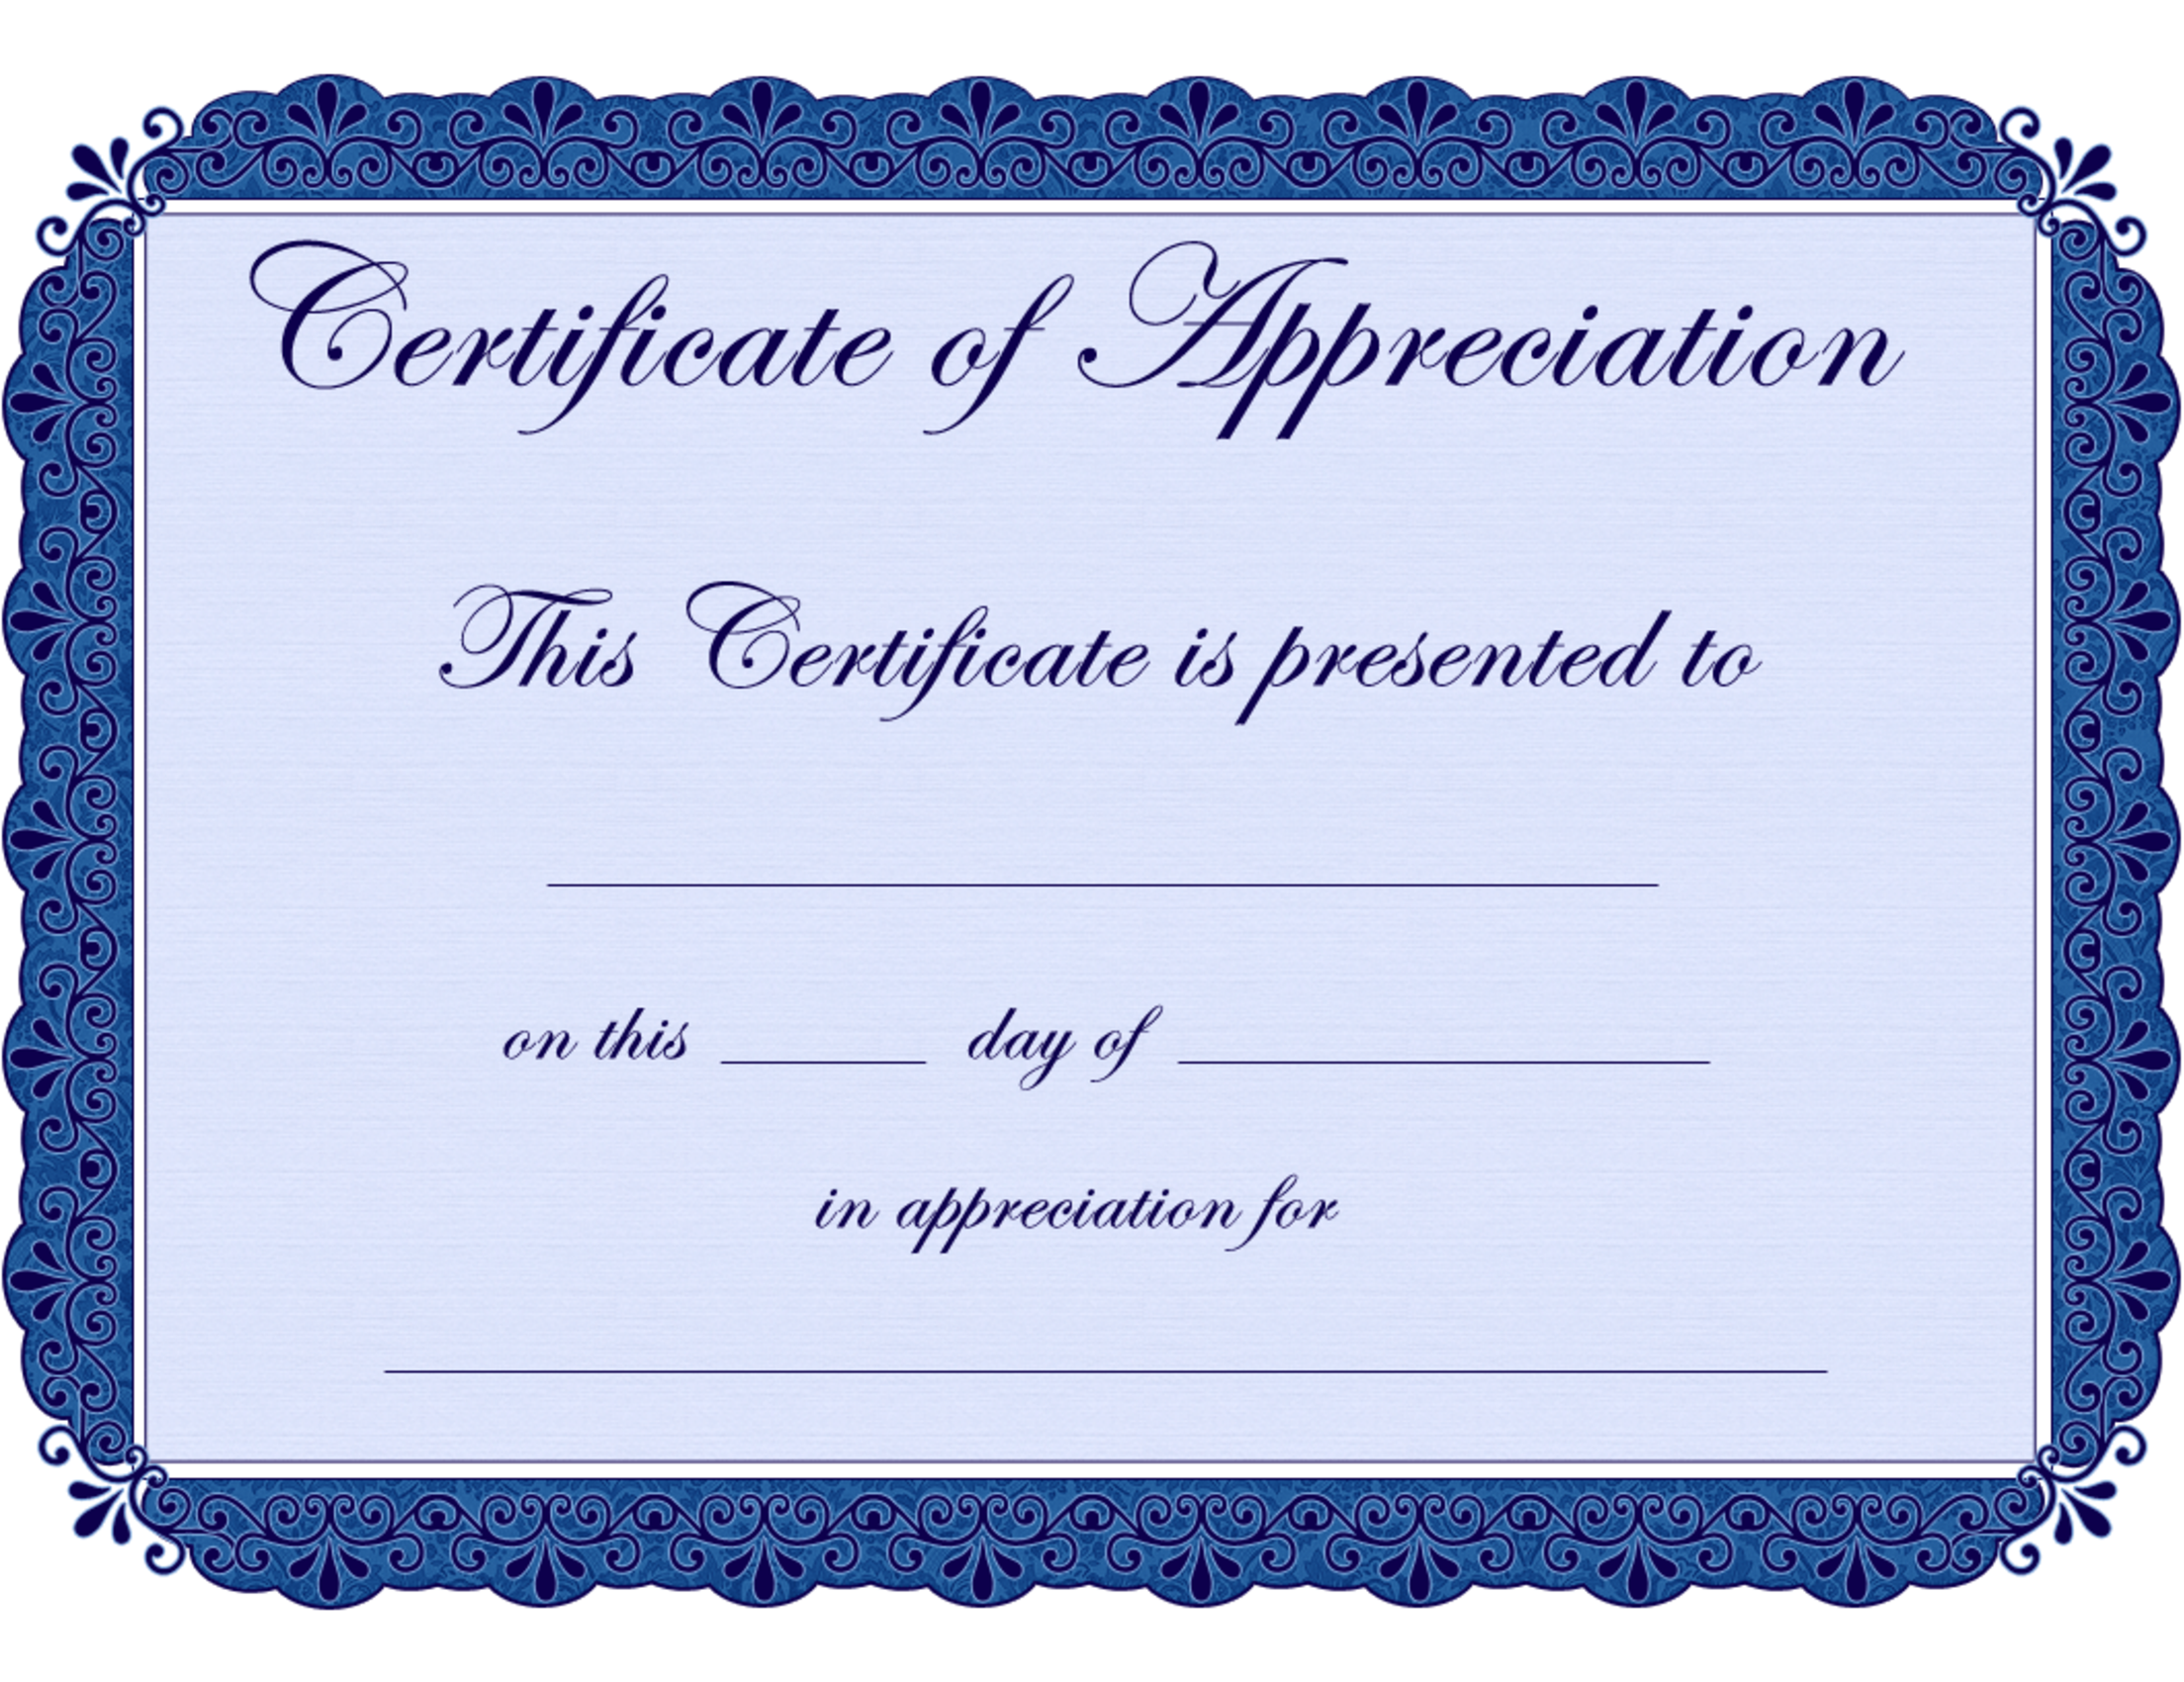 Free printable certificates certificate of appreciation certificate templates free for wordfree word certificate template clipart best clipart best hzikhnhe yadclub